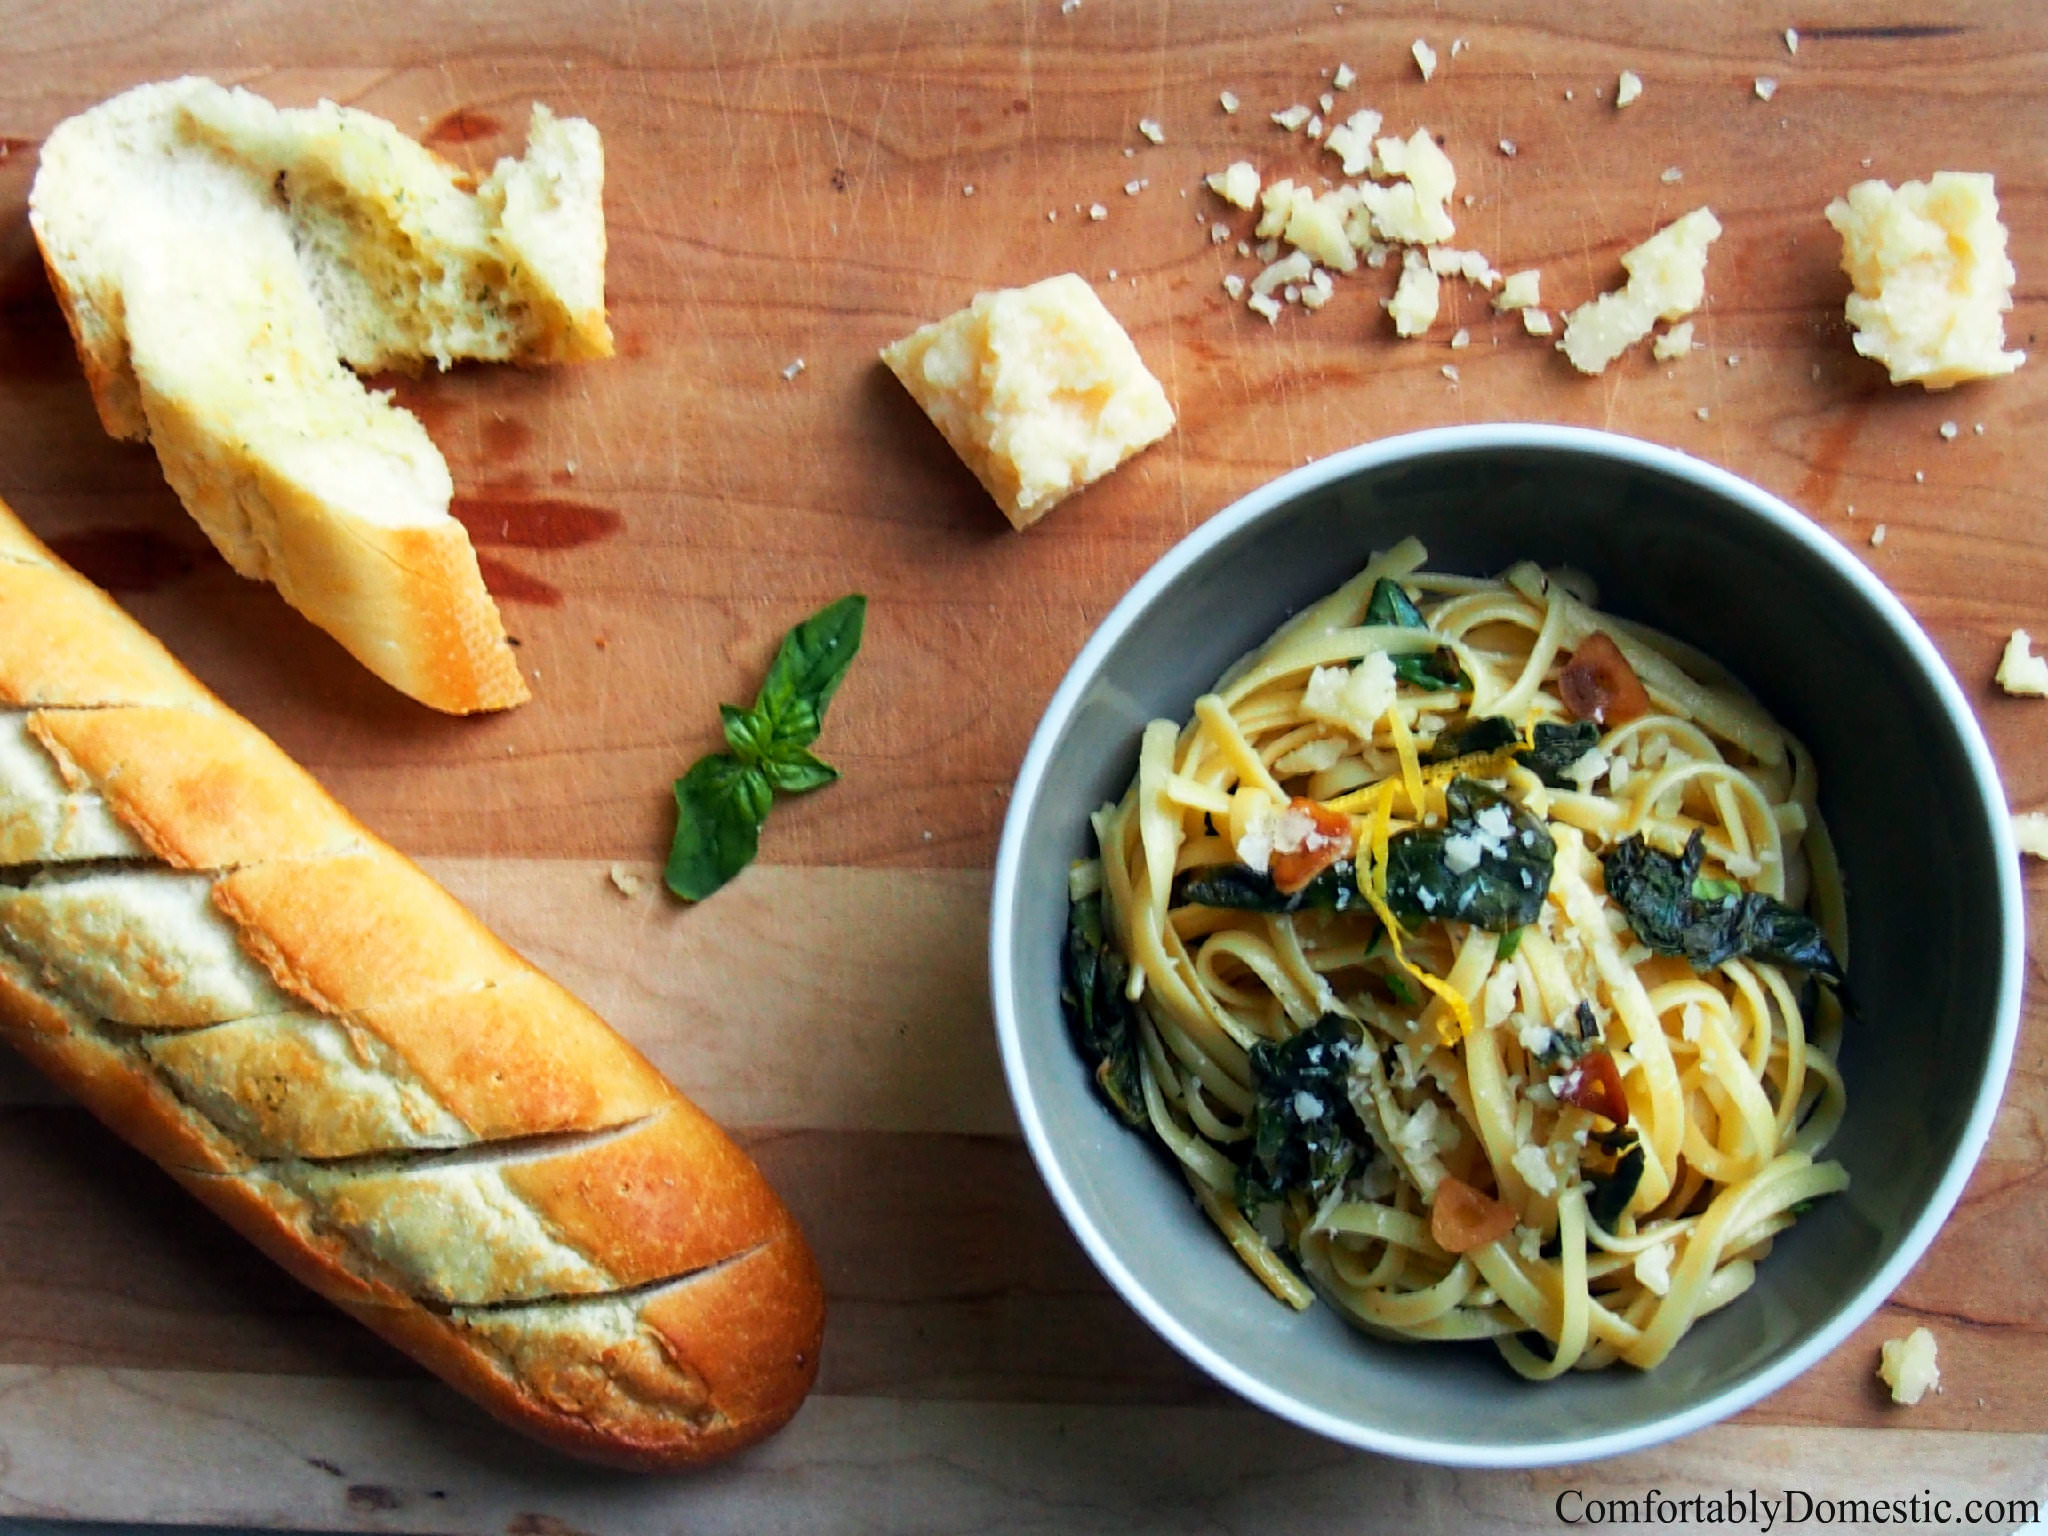 Lemon garlic linguine with kale is a delicious and easy to make weeknight dinner. Adding fresh kale gives this dish a burst of color and health benefits. | ComfortablyDomestic.com